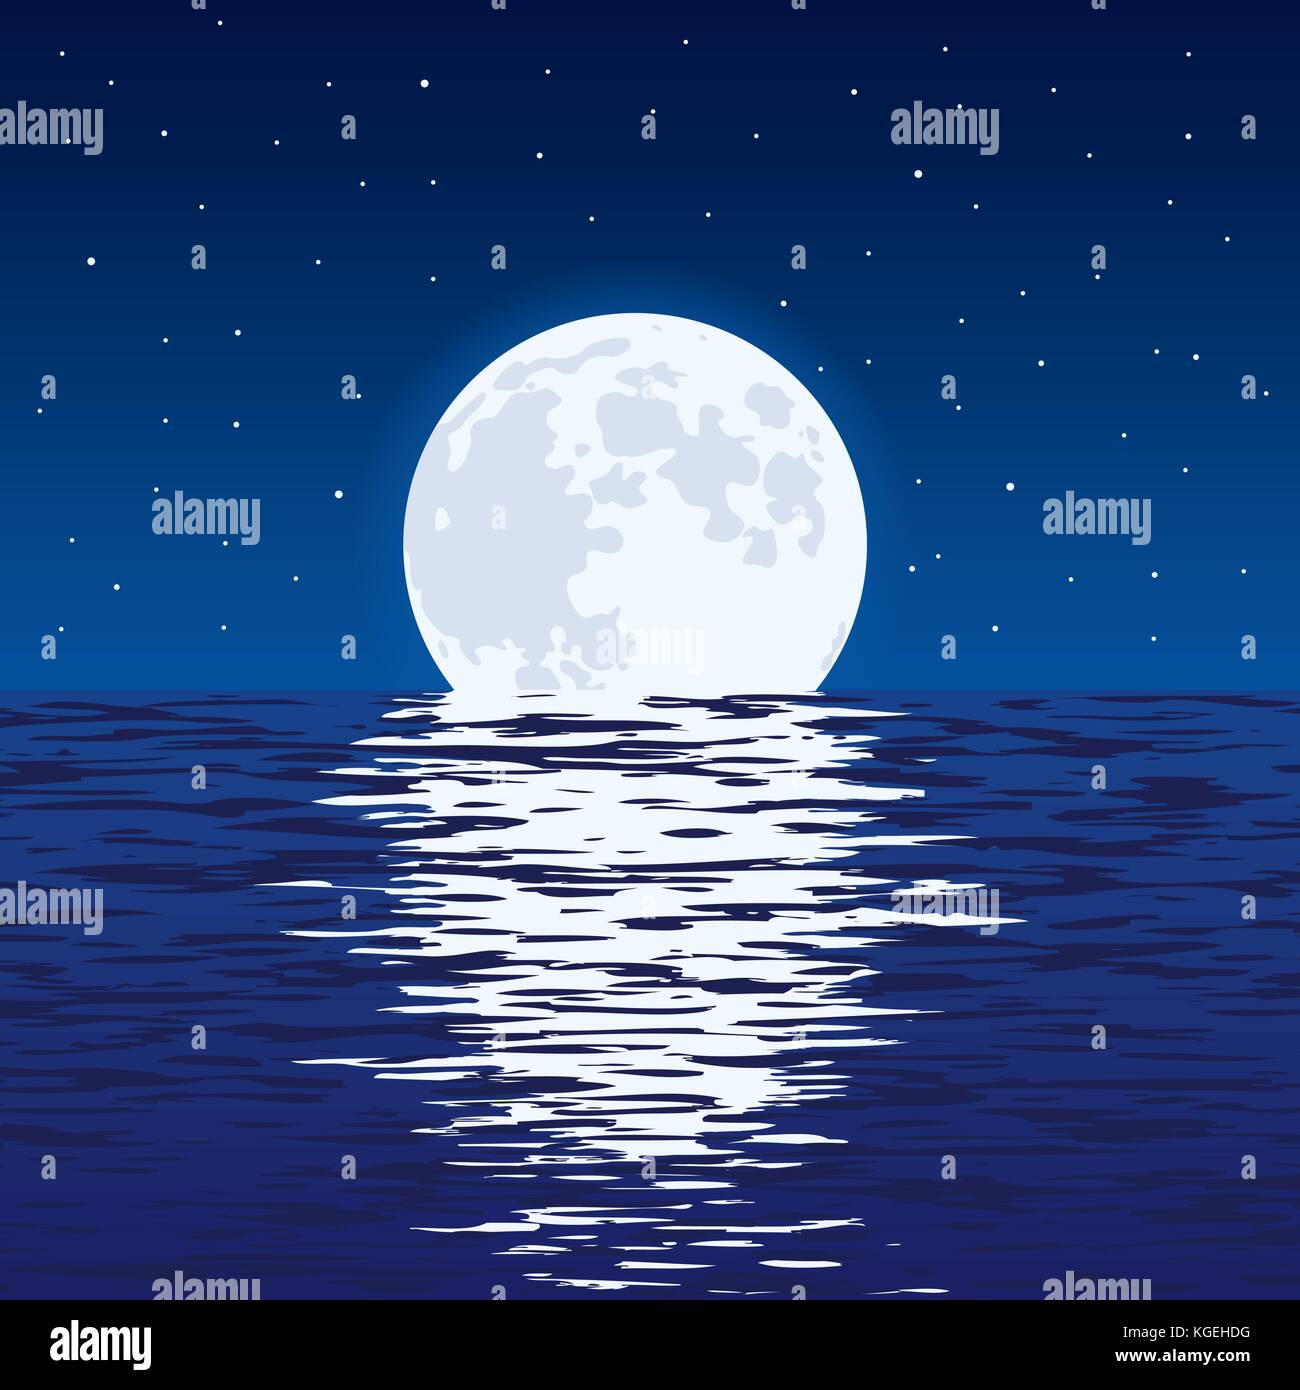 Vector Background Of Blue Sea And Full Moon At Night Light Stock